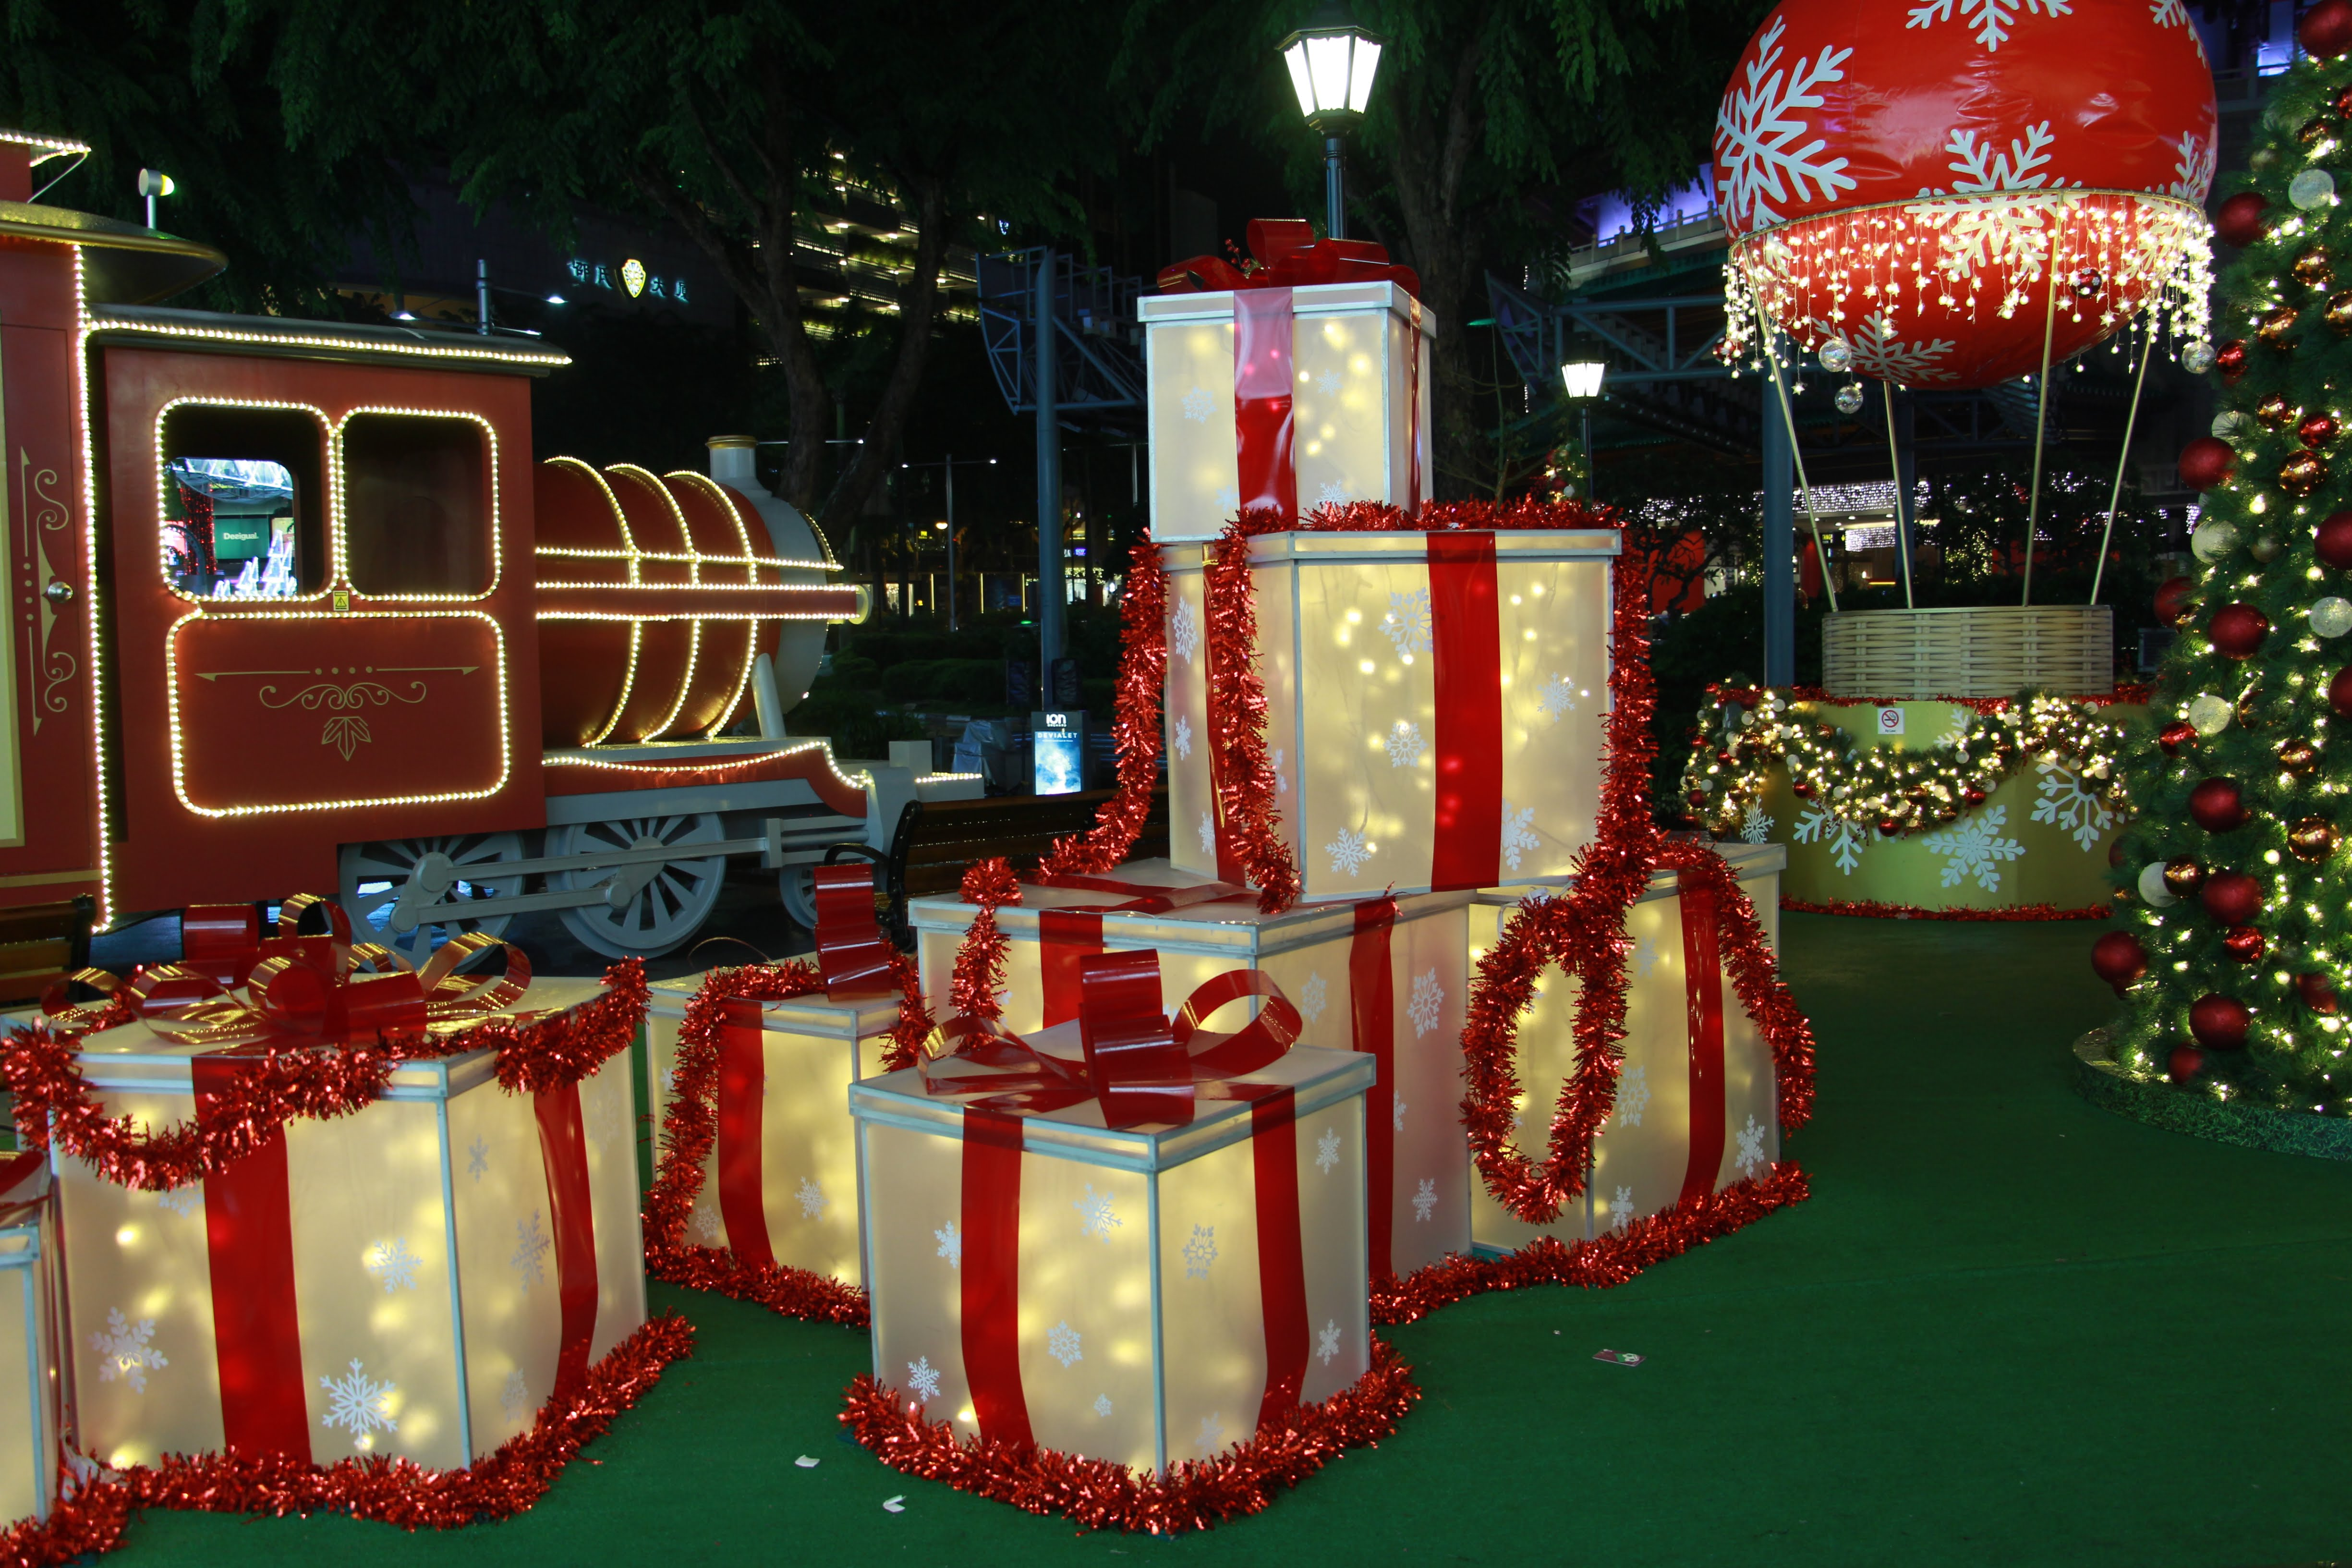 Gift and Train | Singapore | December 2017